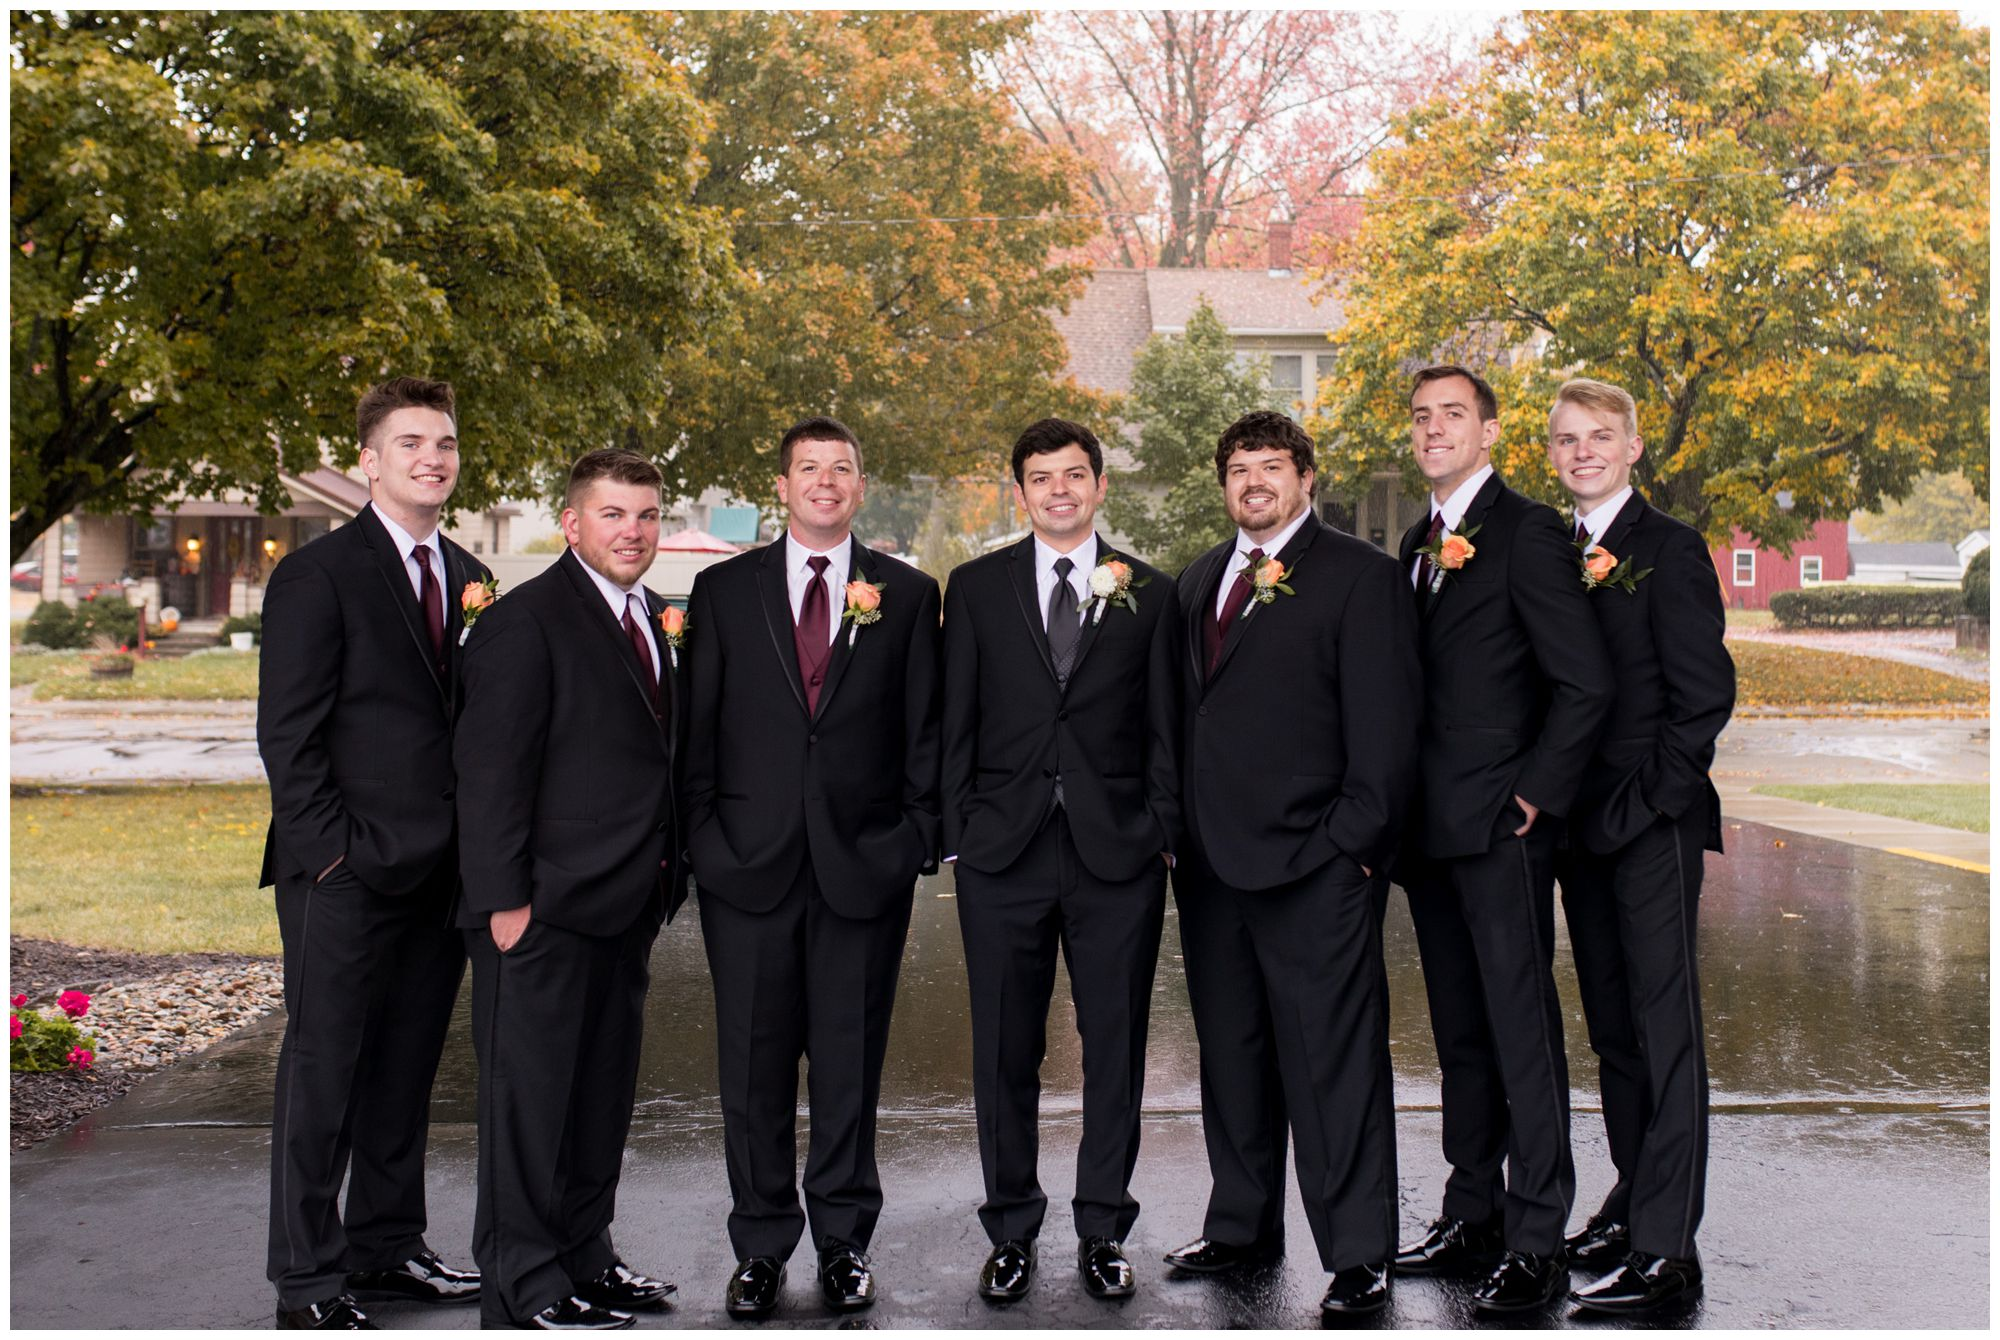 groom and groomsmen portraits before wedding ceremony at Zion Lutheran Church